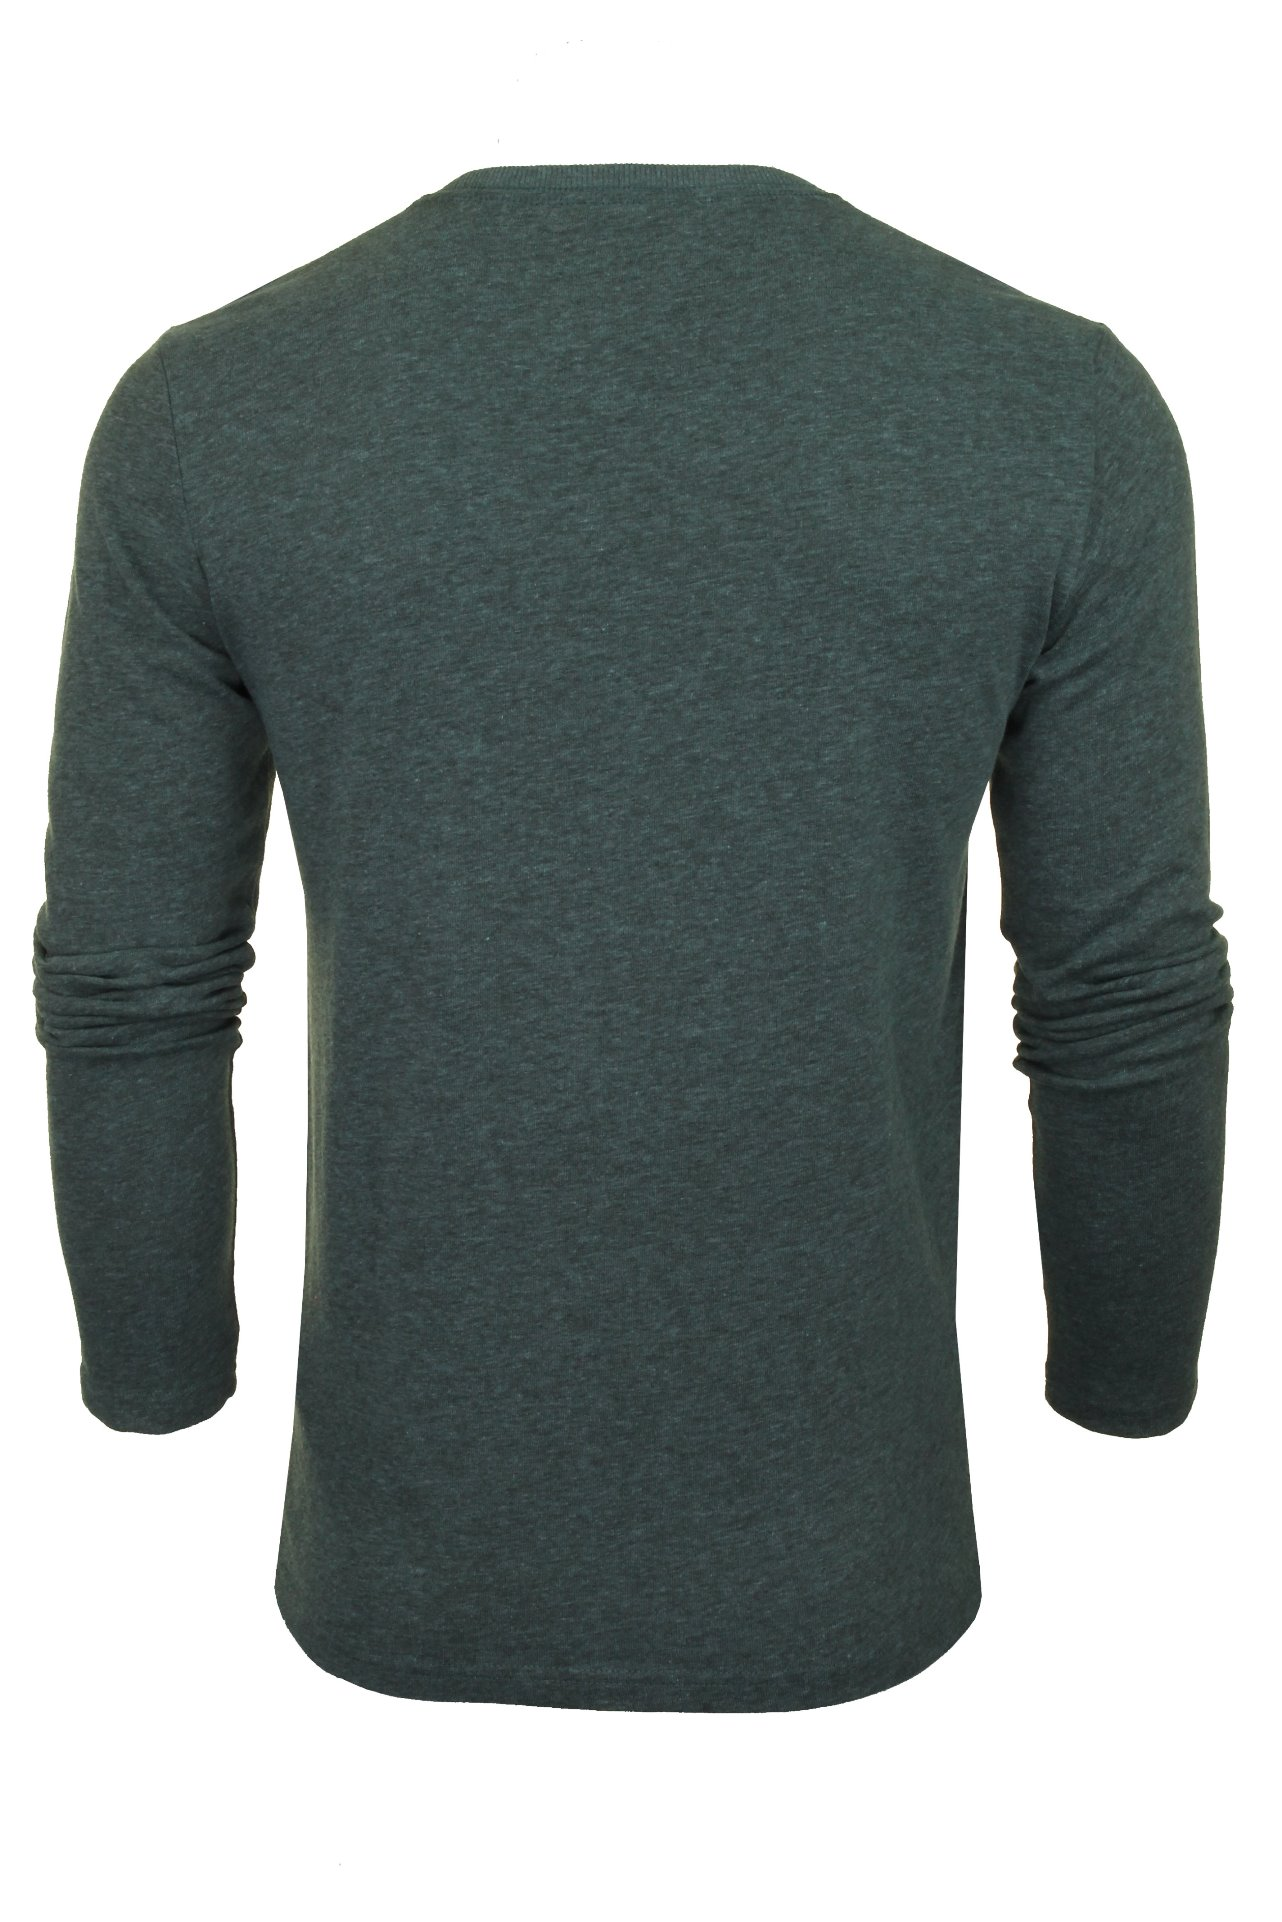 Superdry-T-shirt-homme-034-Classic-Standard-L-S-Tee-034-a-Manches-Longues miniature 7